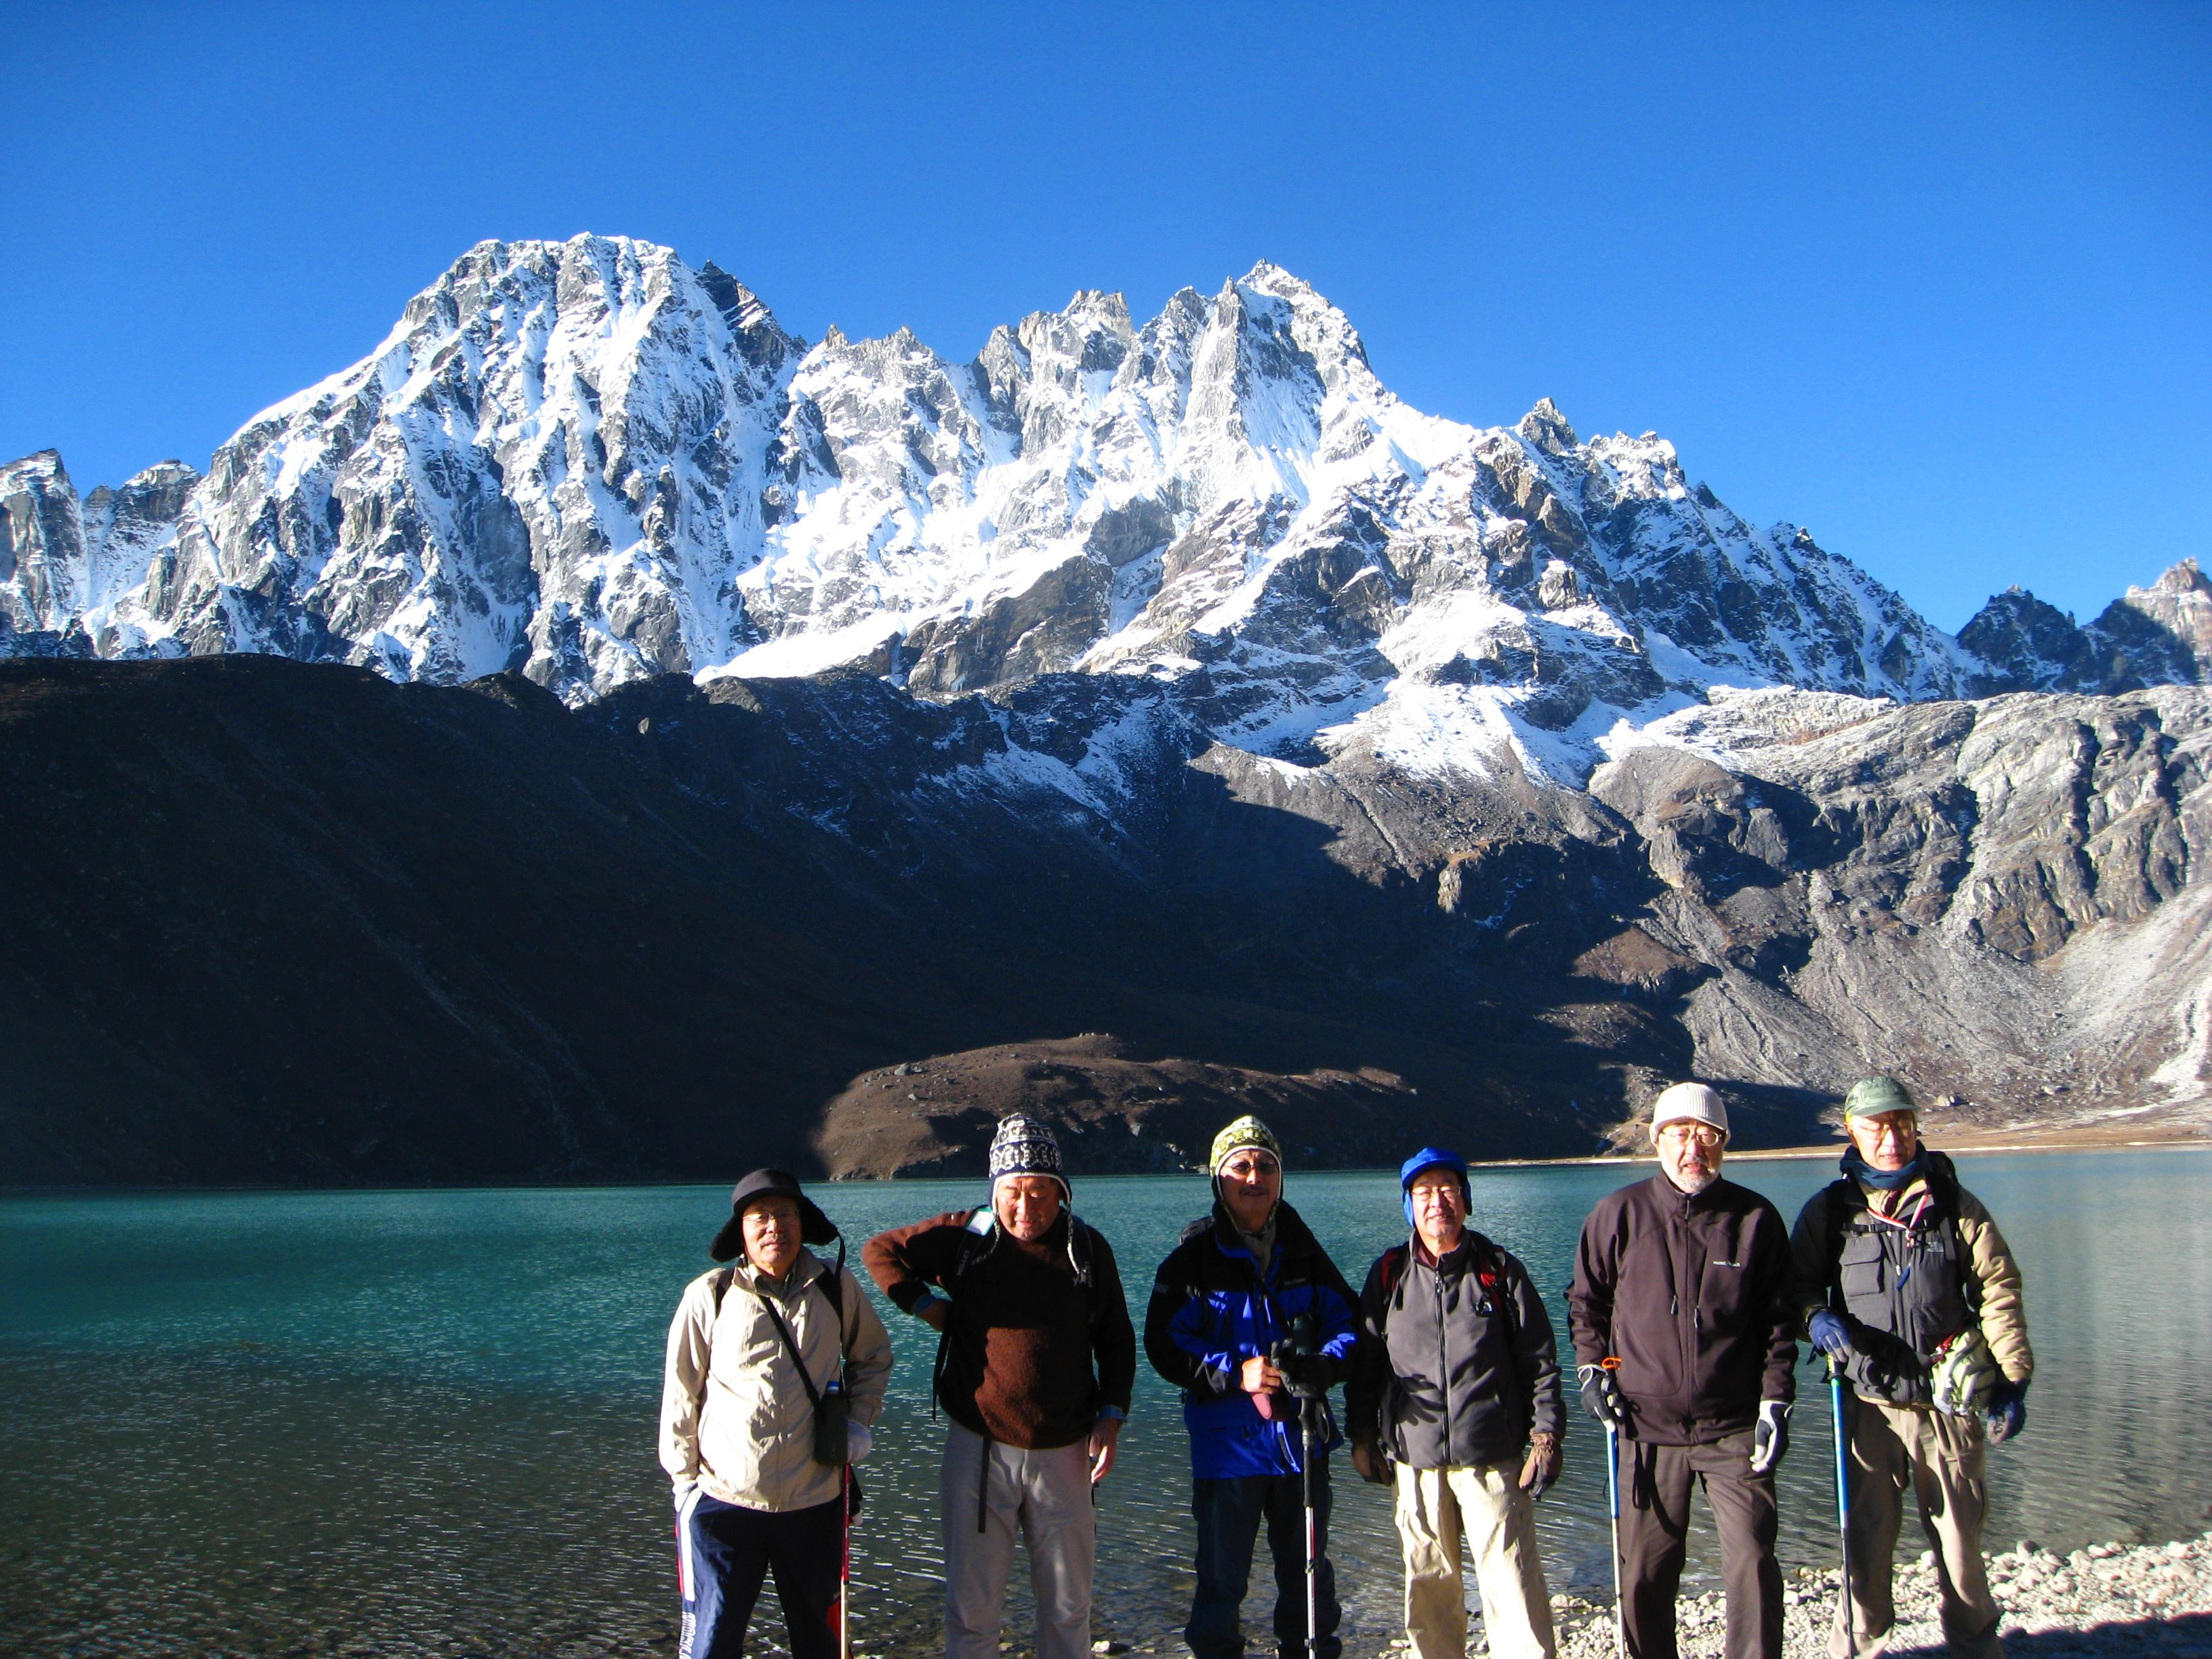 Gokyo Lake Everest Trekking – 14 Days